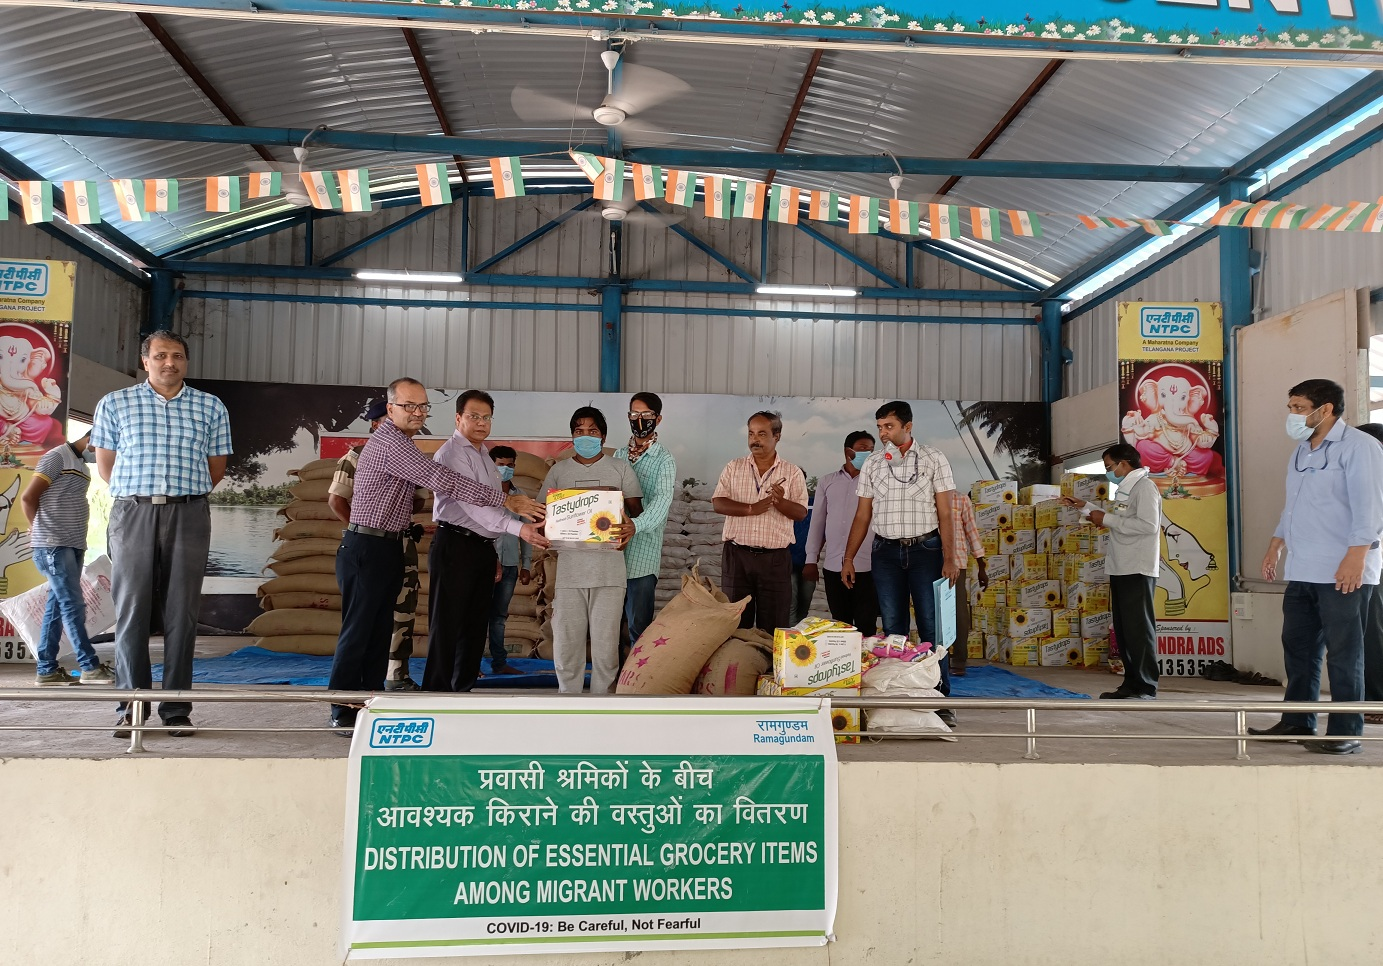 NTPC-Ramagundam distributes essential grocery items among 4500 migrant workers